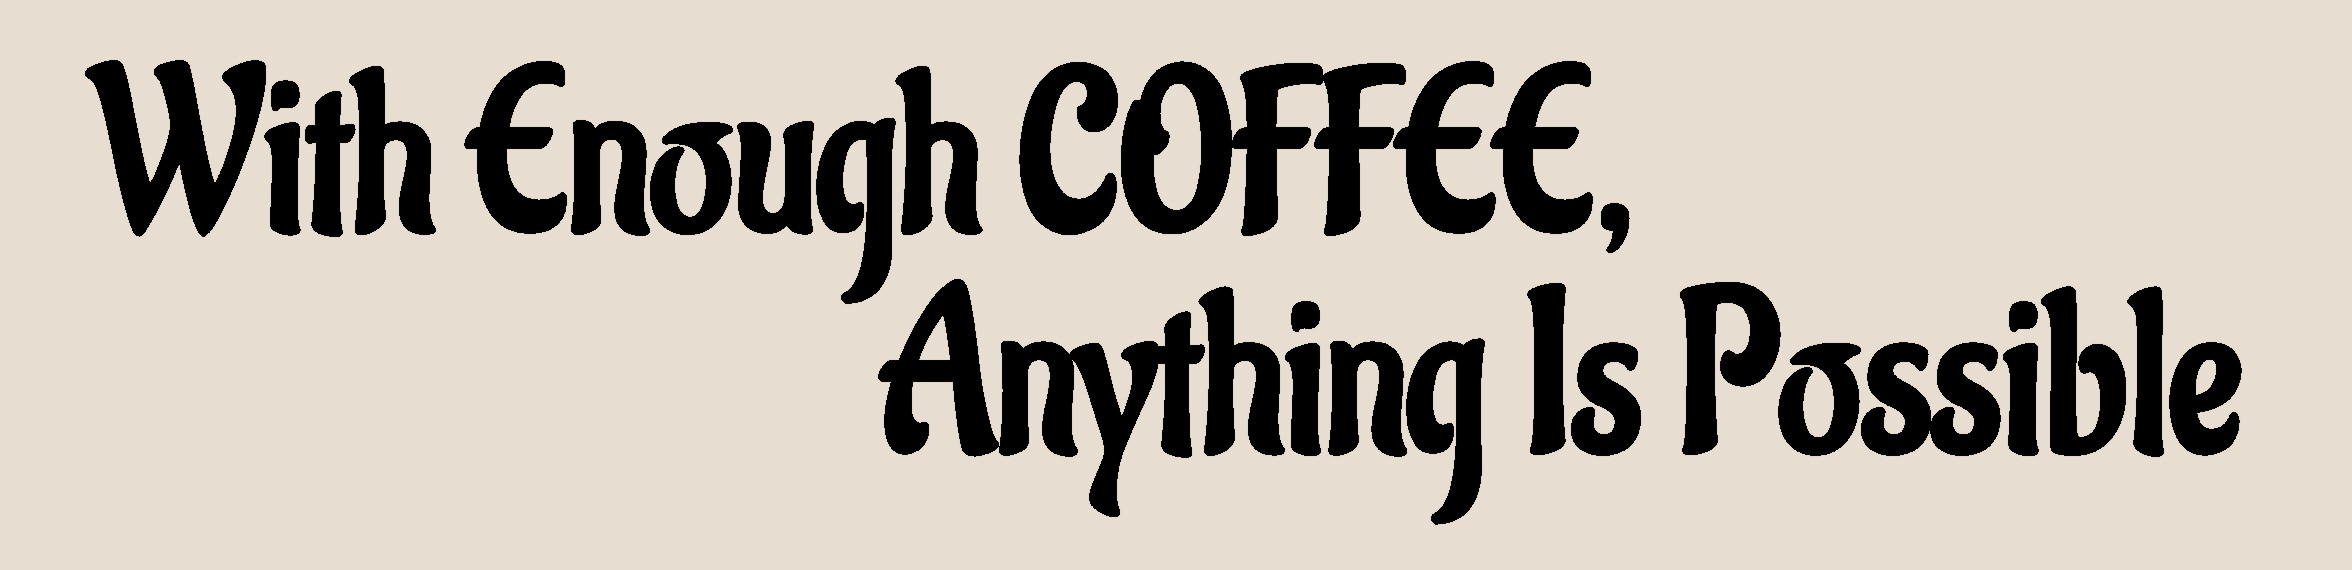 """WITH ENOUGH COFFEE ANYTHING IS POSSIBLE 8"""" WOODEN BLOCK SIGN"""